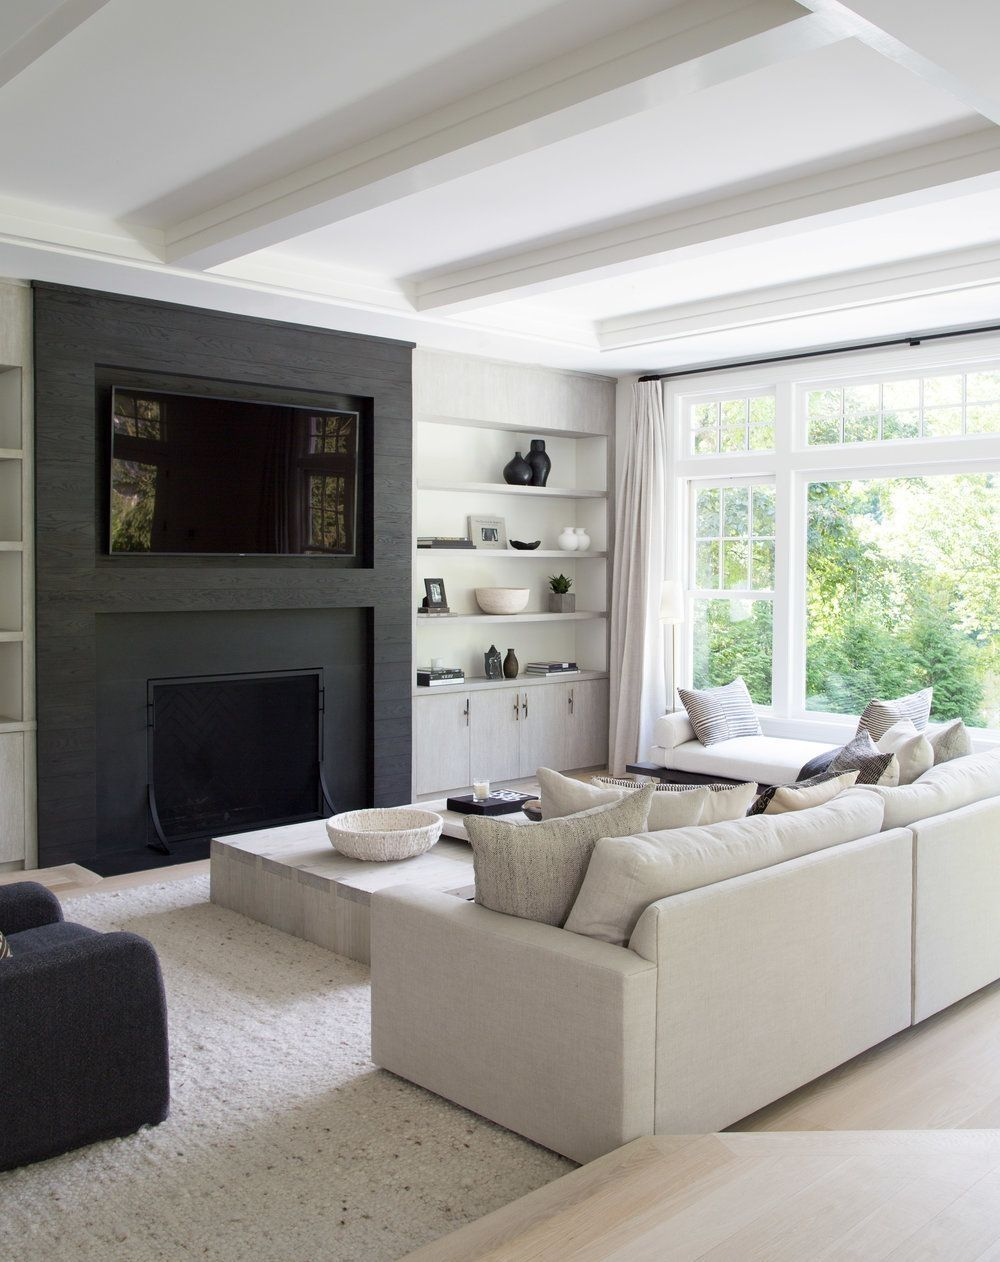 17 Fascinating Black Living Room Designs Ideas That Never Go Out